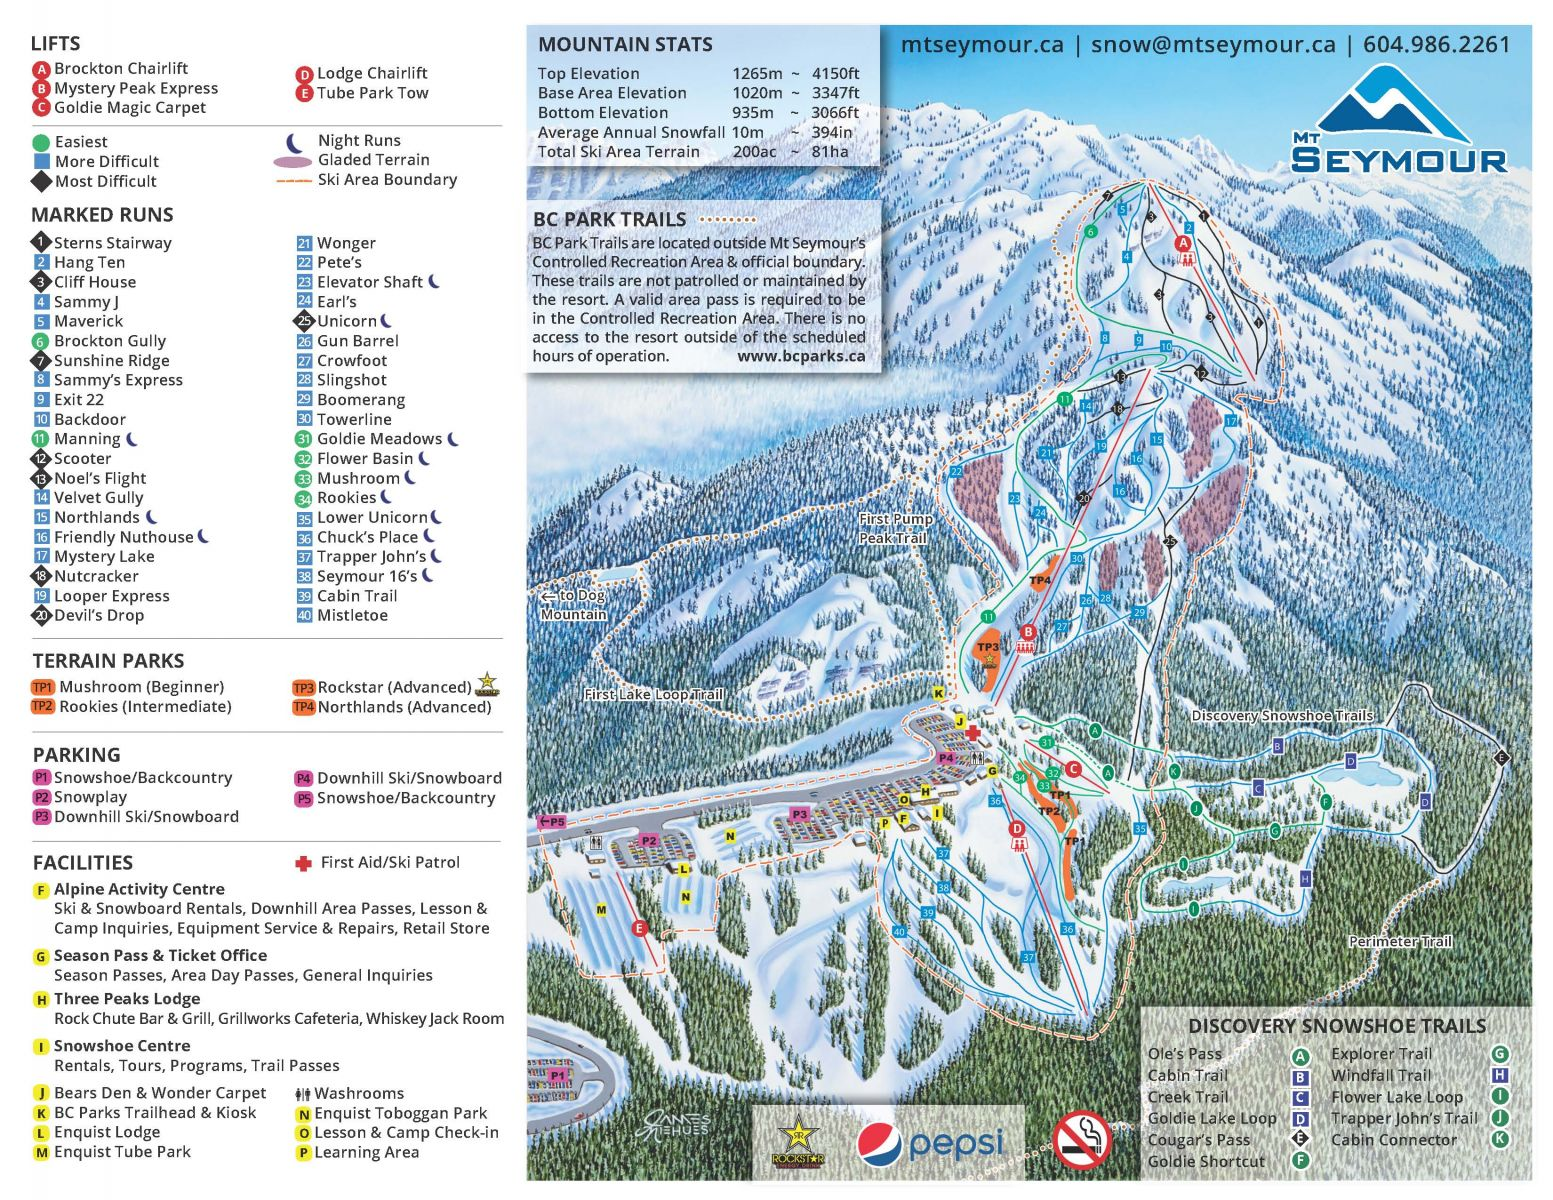 snowshoe trail map with Pistemap on 5485037078 additionally Summer likewise How To Wax Your Own Skis A Tutorial in addition Mountain Stats further Maps Sw y.